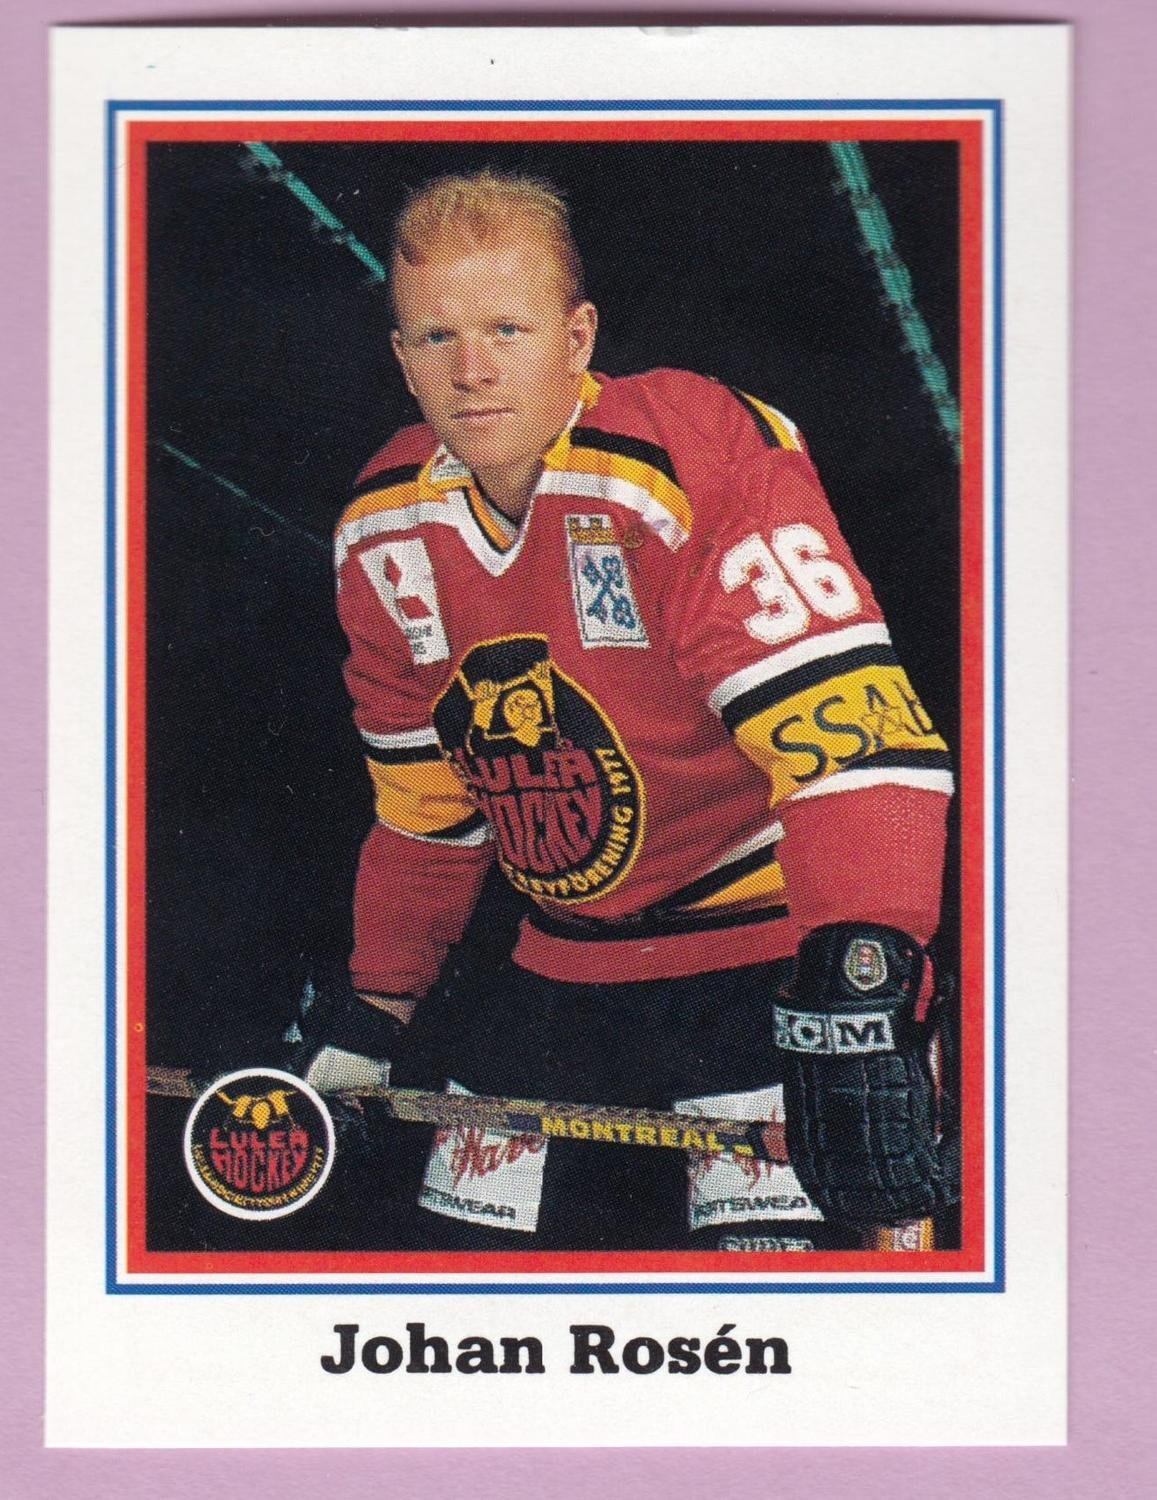 1993-94 Semic Elitserien #167 Johan Rosén Luleå Hockey